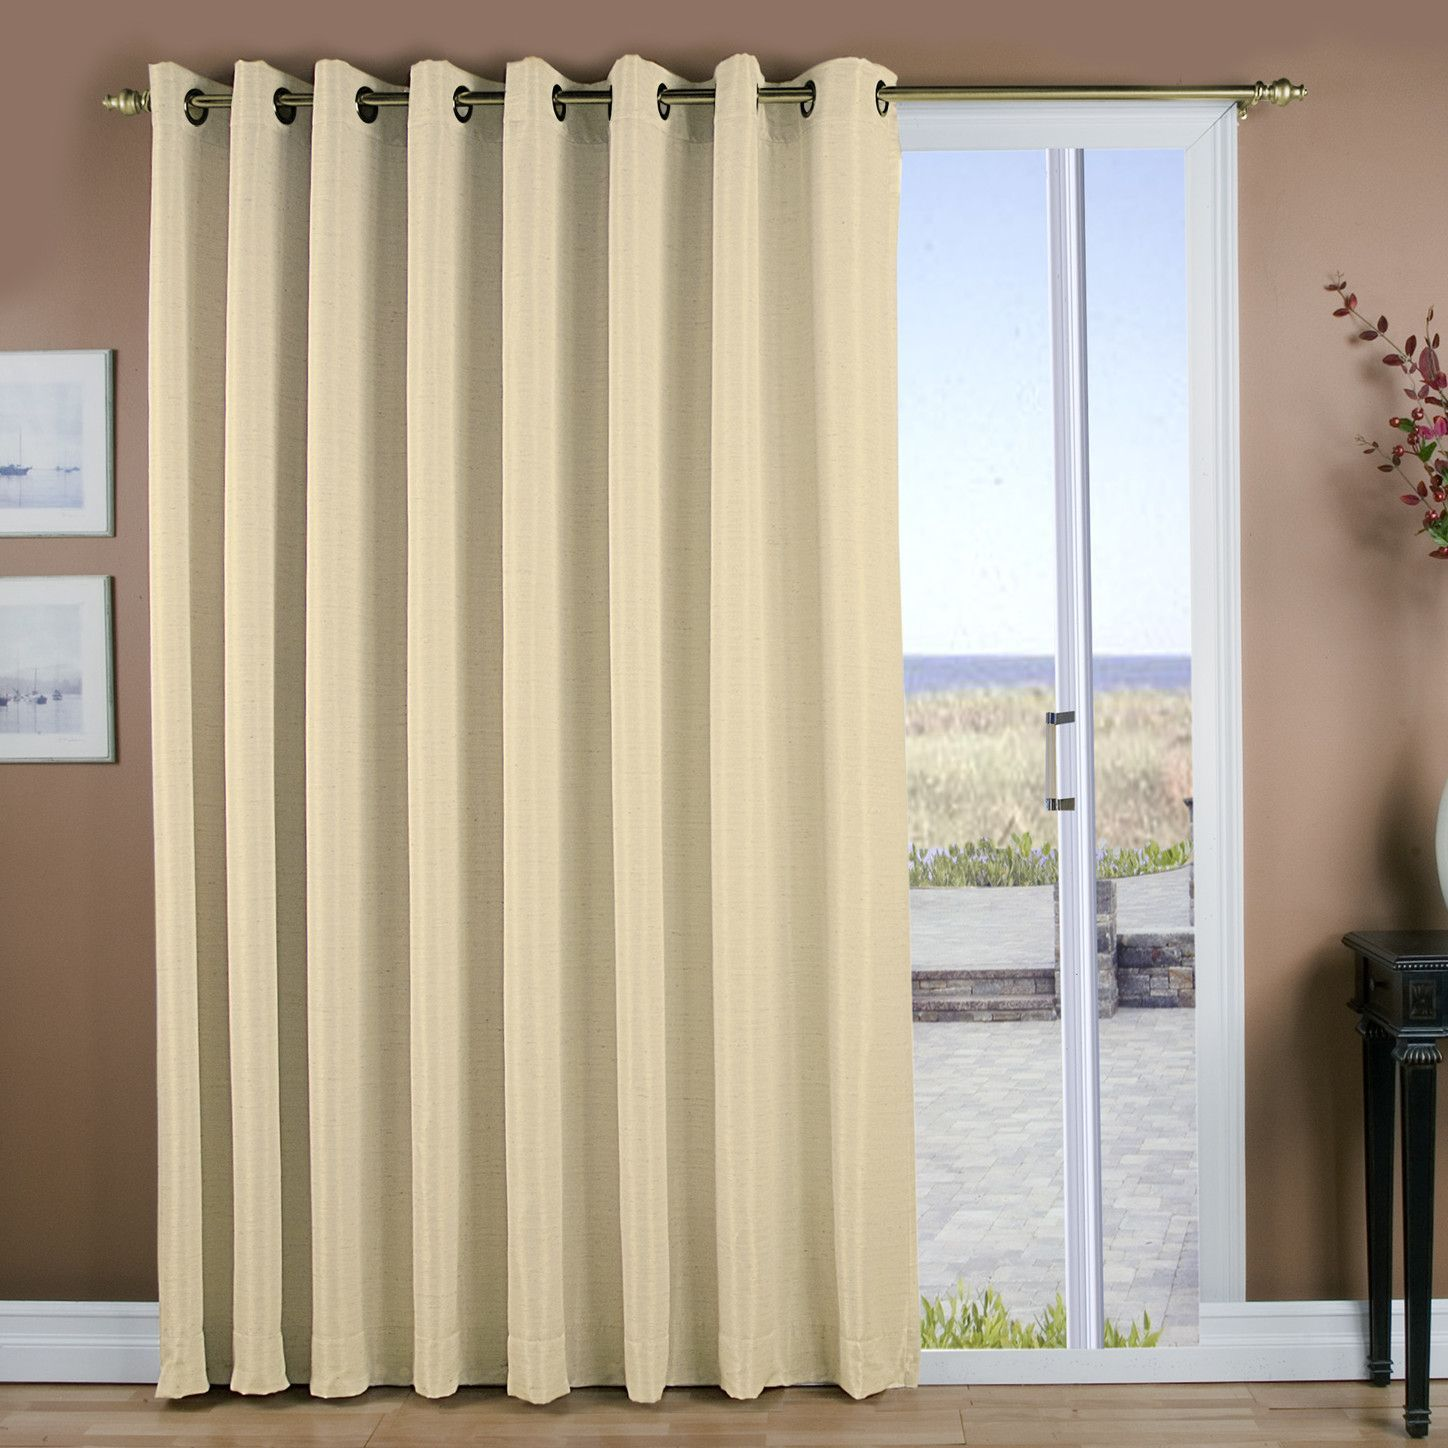 Window covering ideas  grasscloth lined grommet patio single curtain panel  products